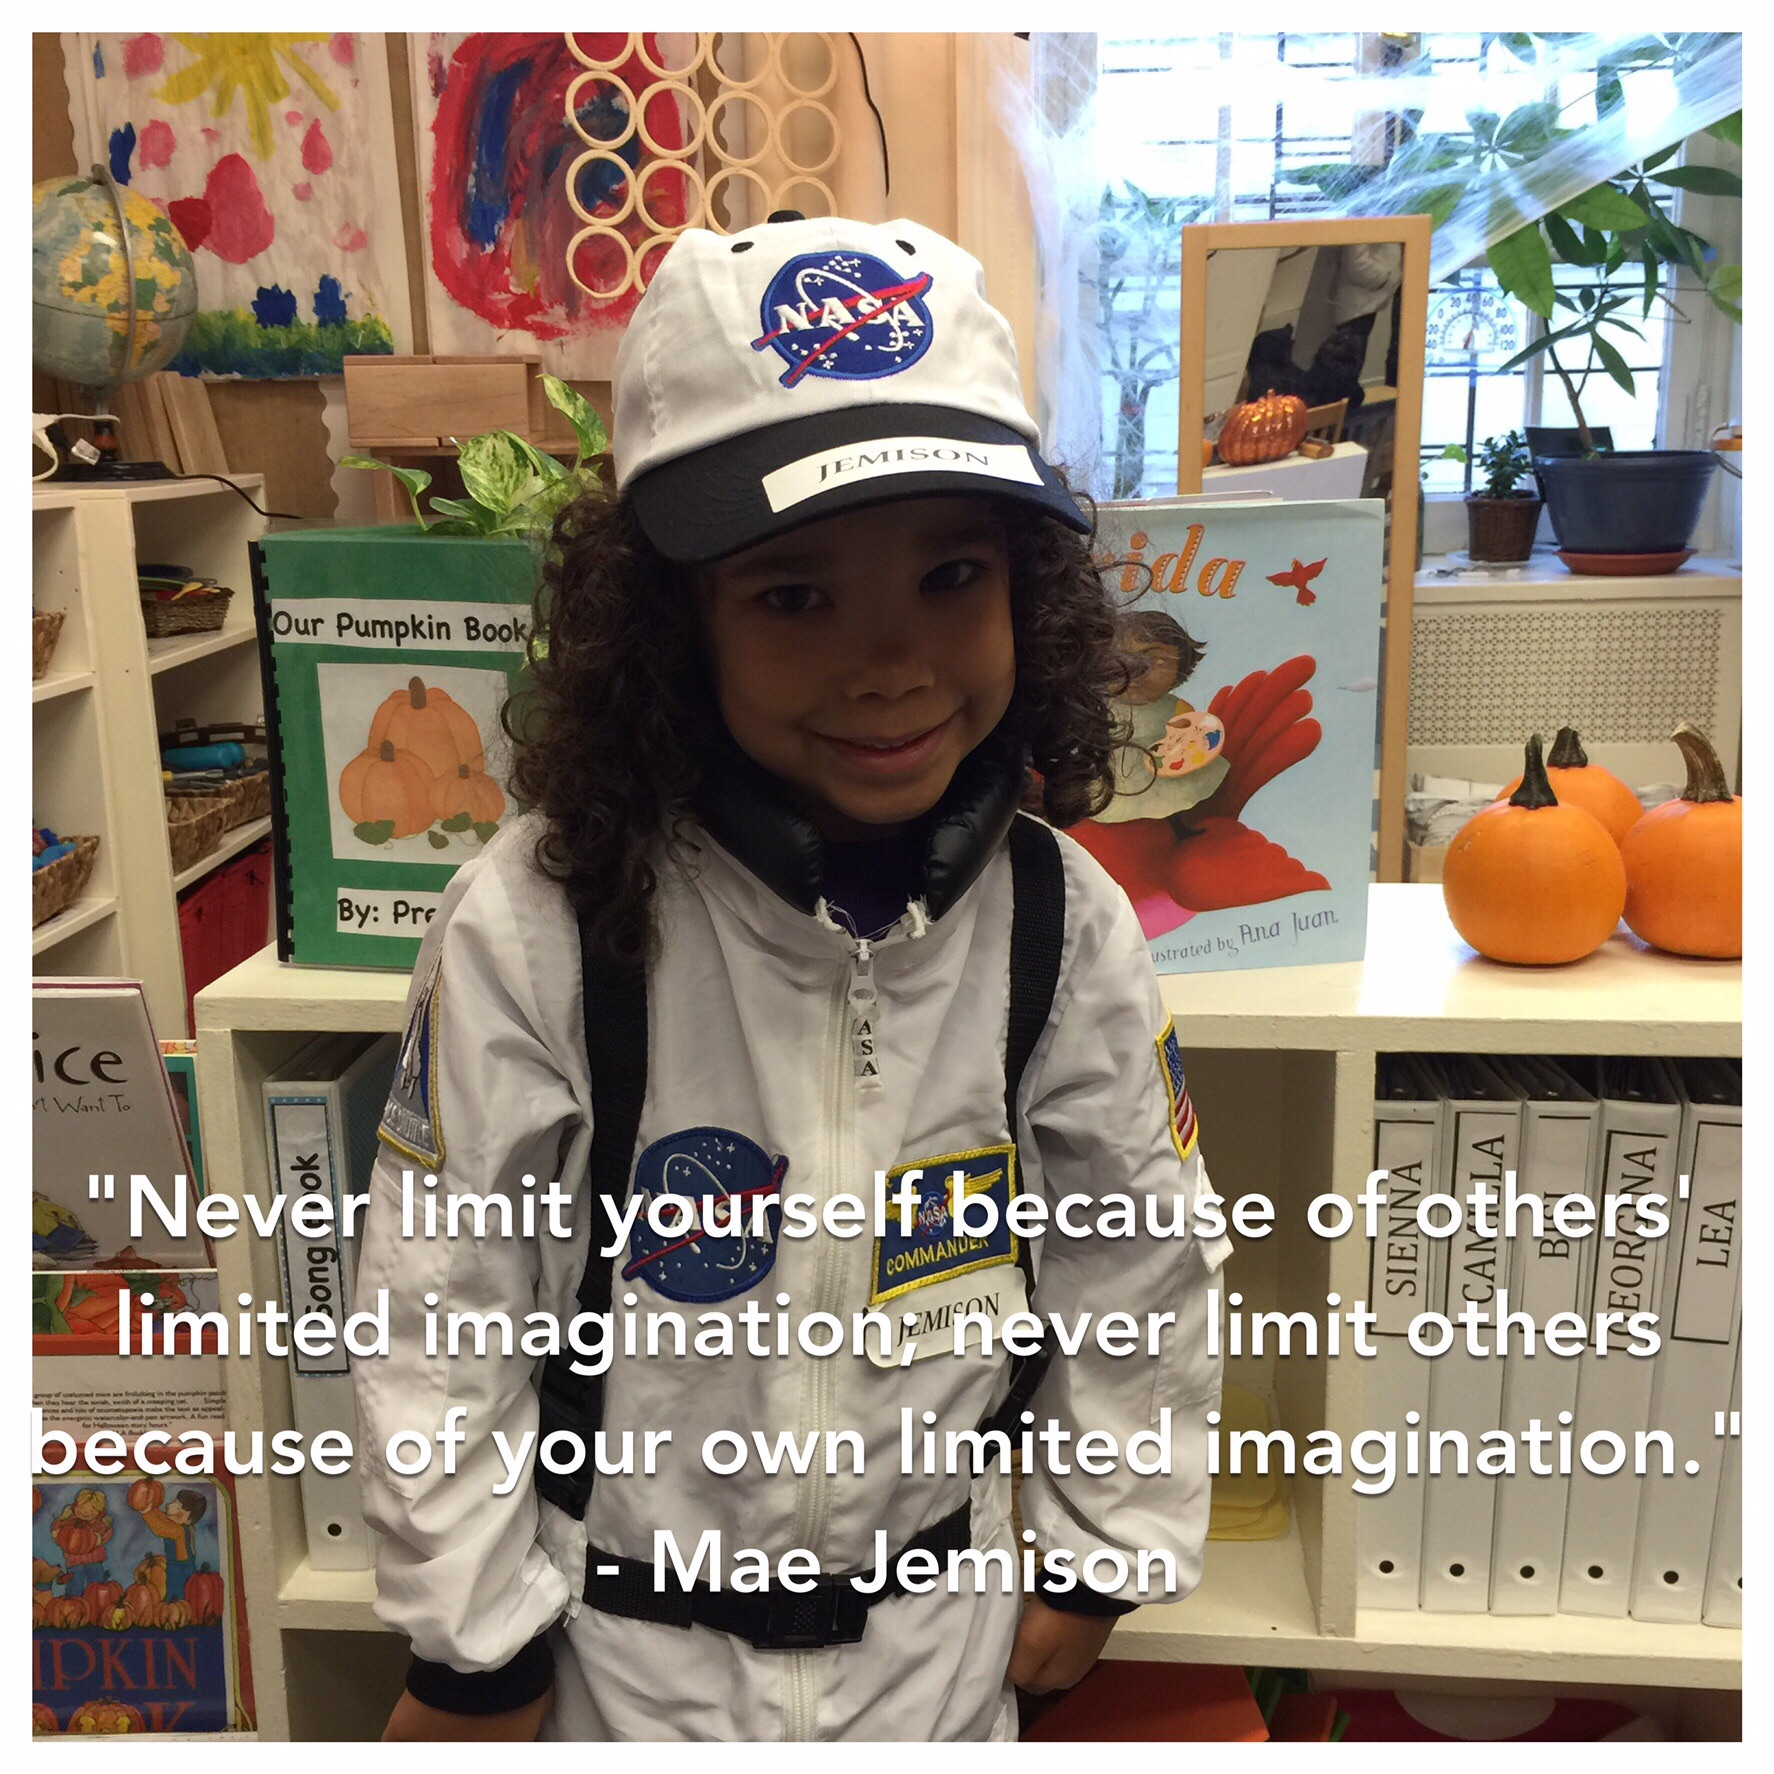 Our first Inspiration, Mae Jemison, was the first African-American woman in space!